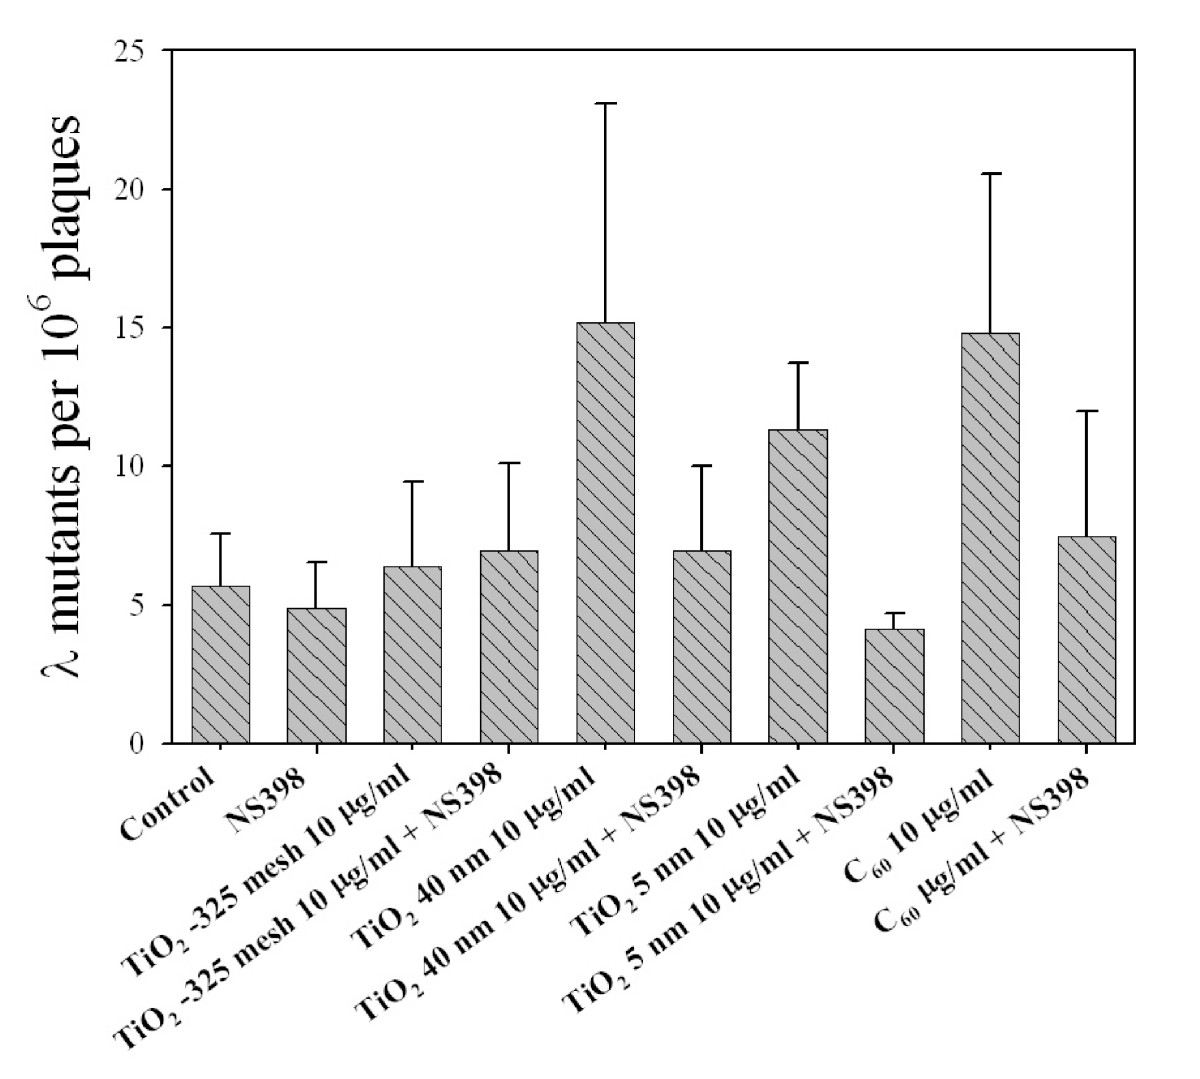 http://static-content.springer.com/image/art%3A10.1186%2F1743-8977-6-3/MediaObjects/12989_2008_Article_67_Fig7_HTML.jpg